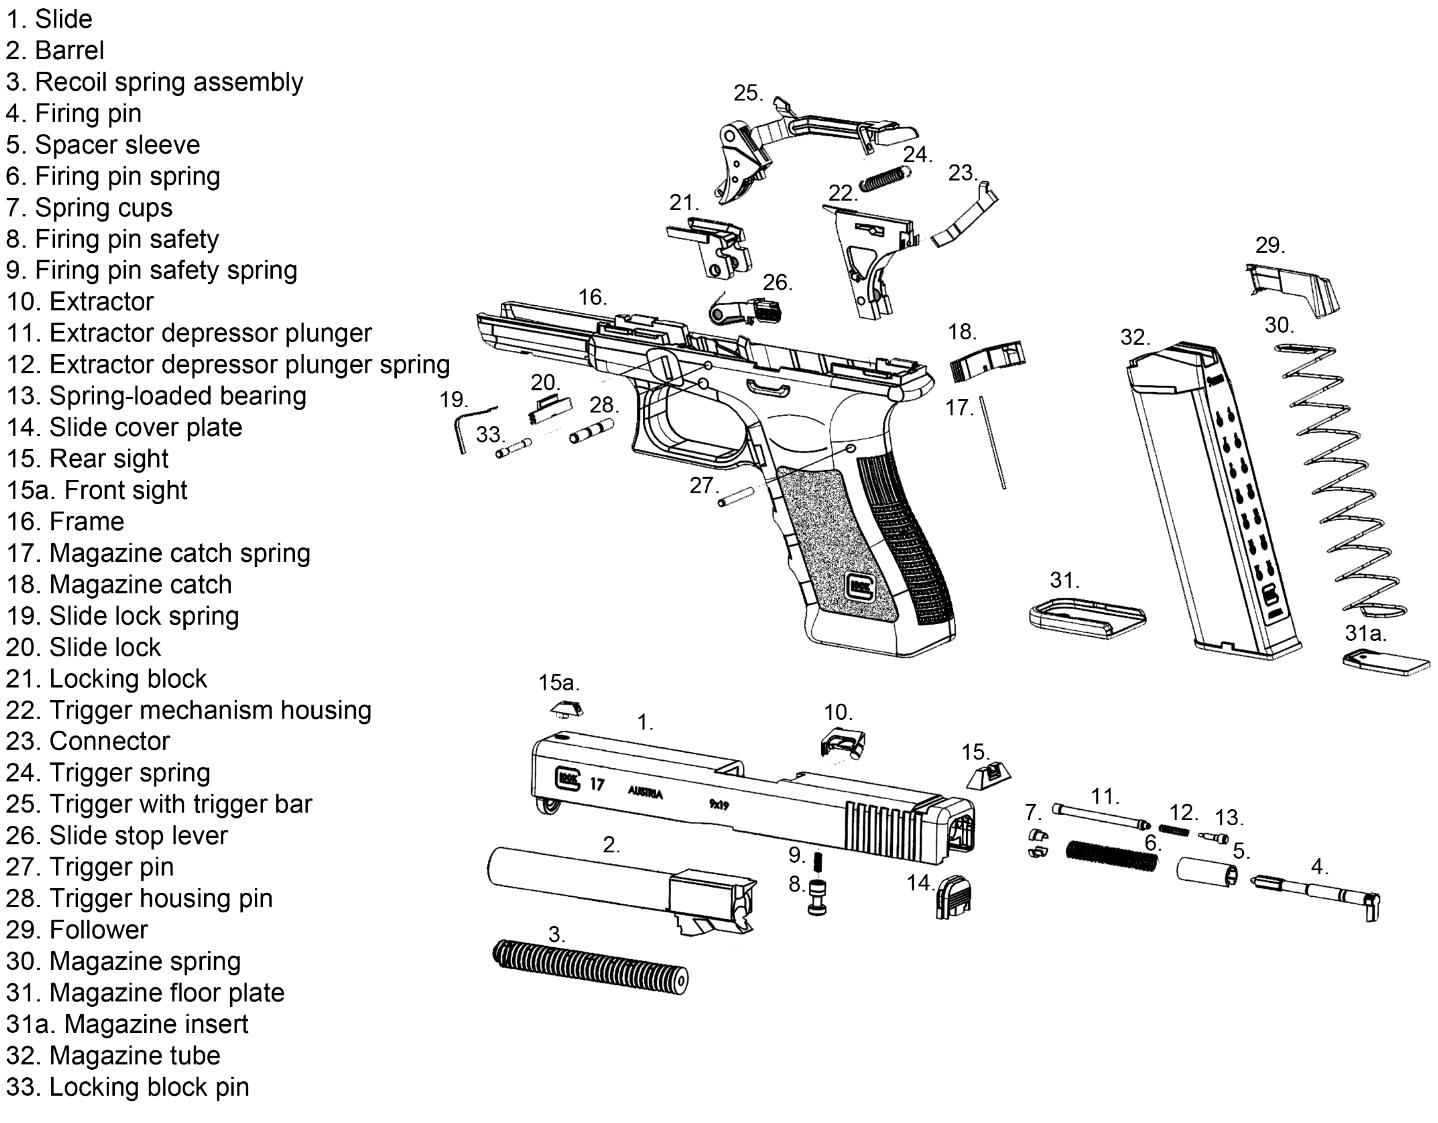 Glock 22 Exploded Diagram 6 2 Volleyball Rotation 17 Firearms Pinterest Guns